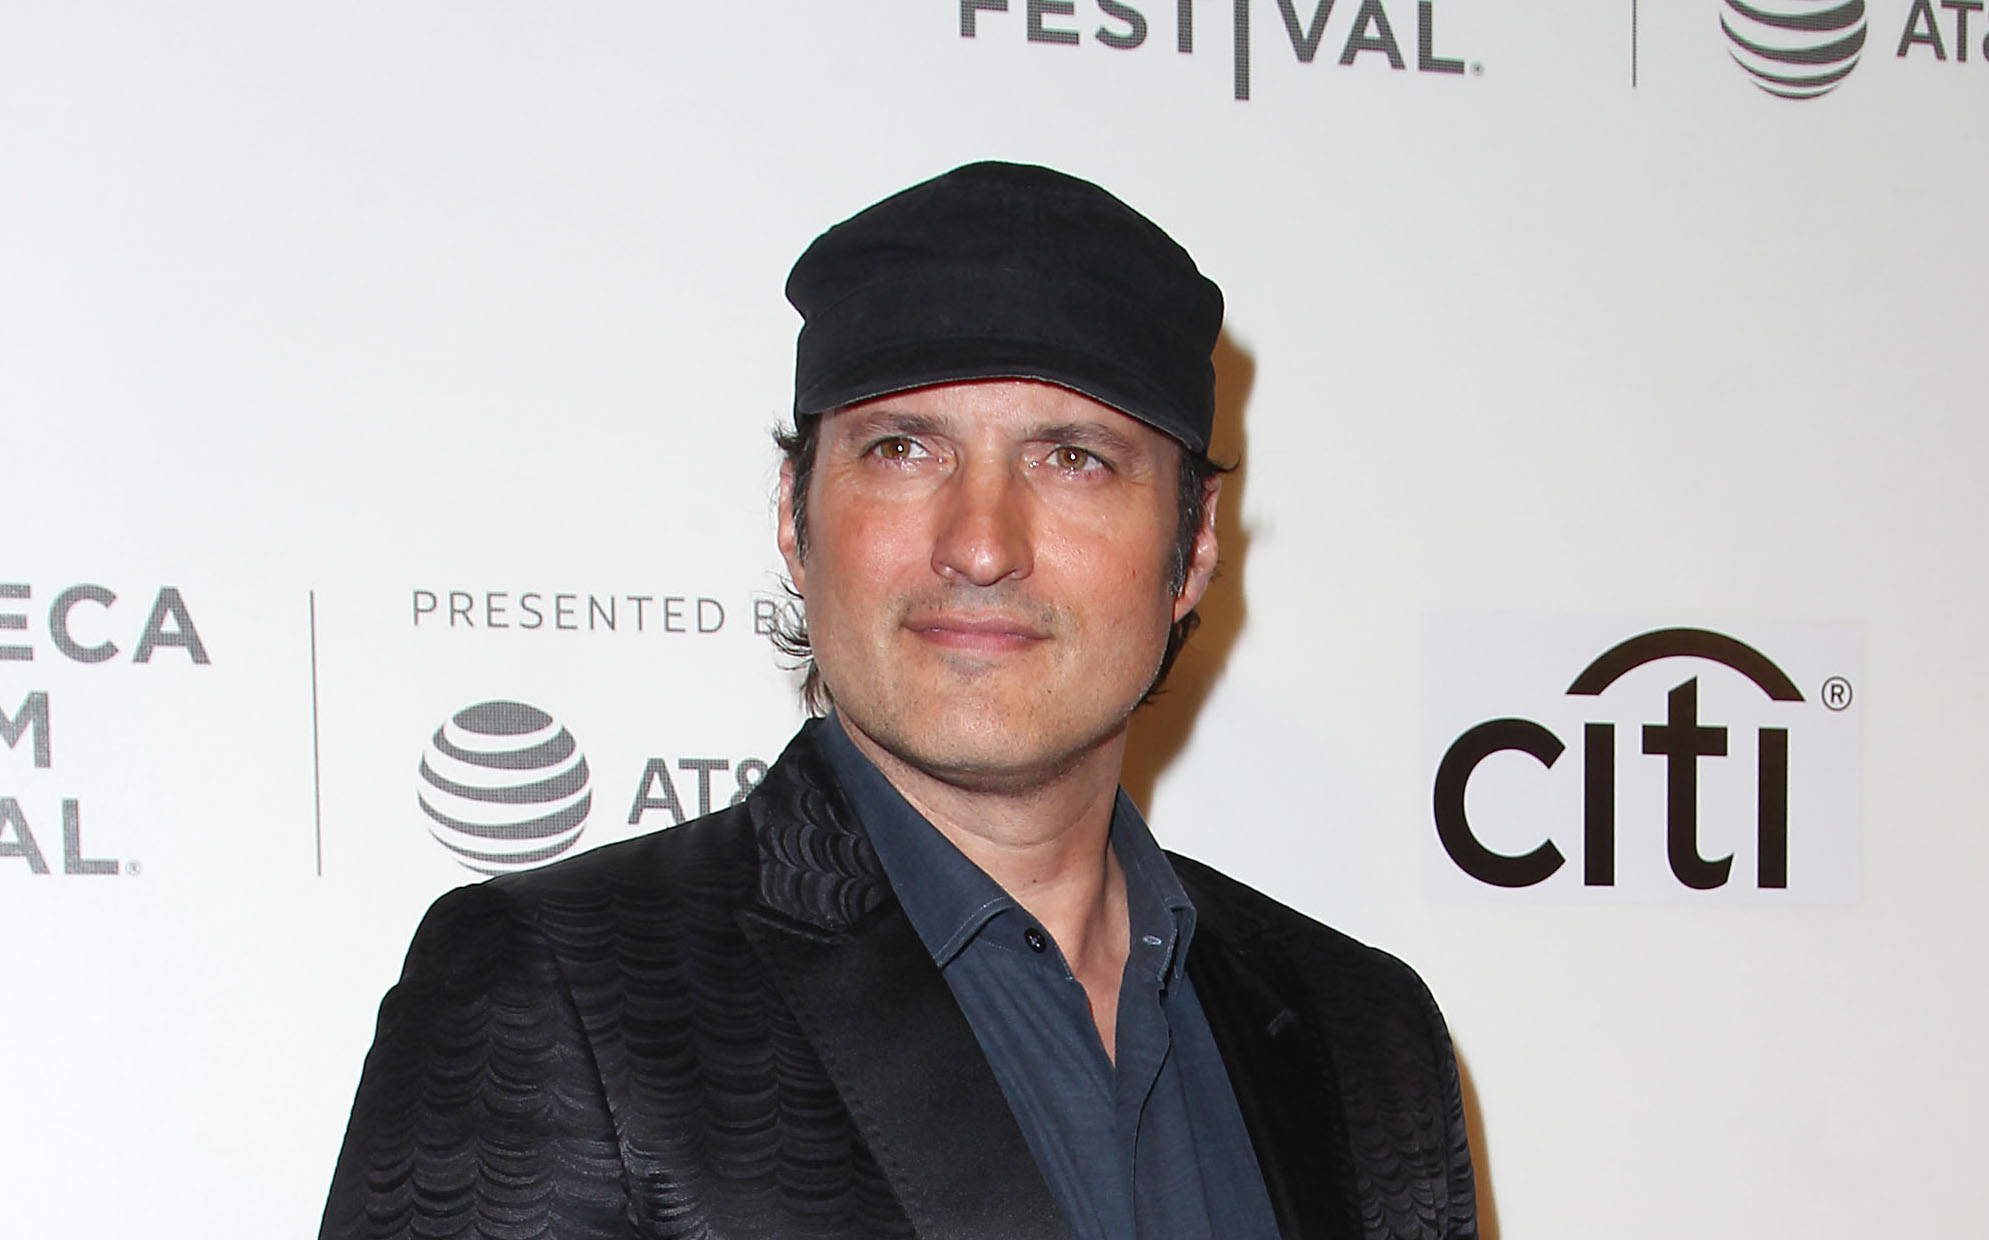 Robert RodriguezTribeca Talks Storytellers - Barbra Streisand with Robert Rodriguez, Tribeca Film Festival, New York, USA - 29 Apr 2017